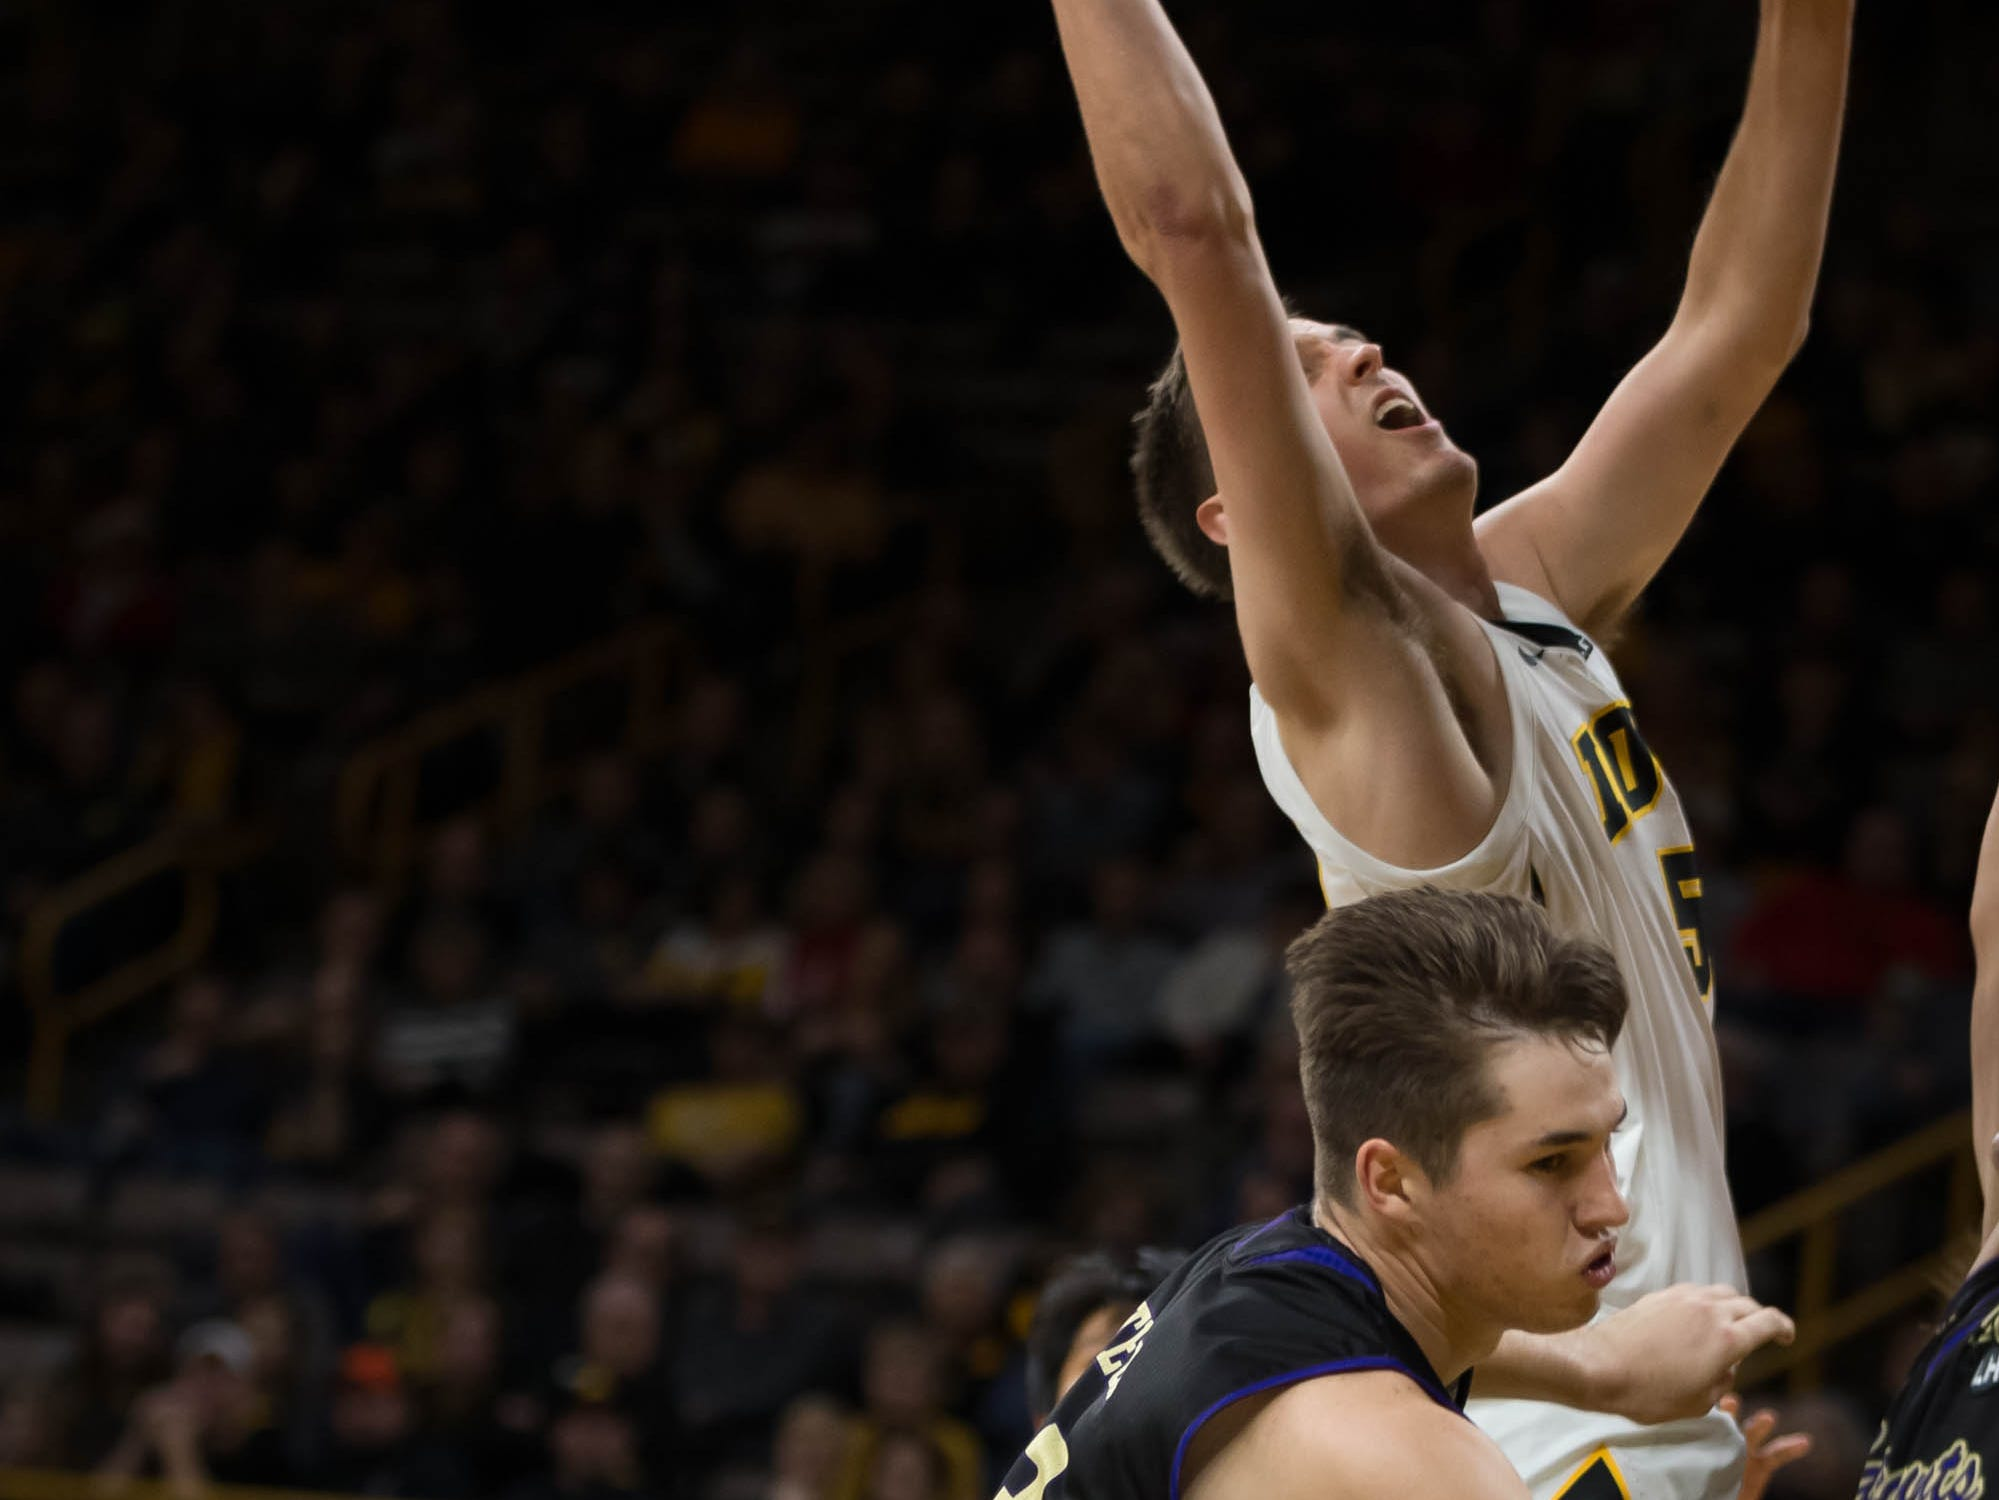 Iowa senior forward Nicholas Baer (51) reaches for a layup in the first half at Carver Hawkeye Arena in Iowa City on Tuesday, Dec. 18, 2018.